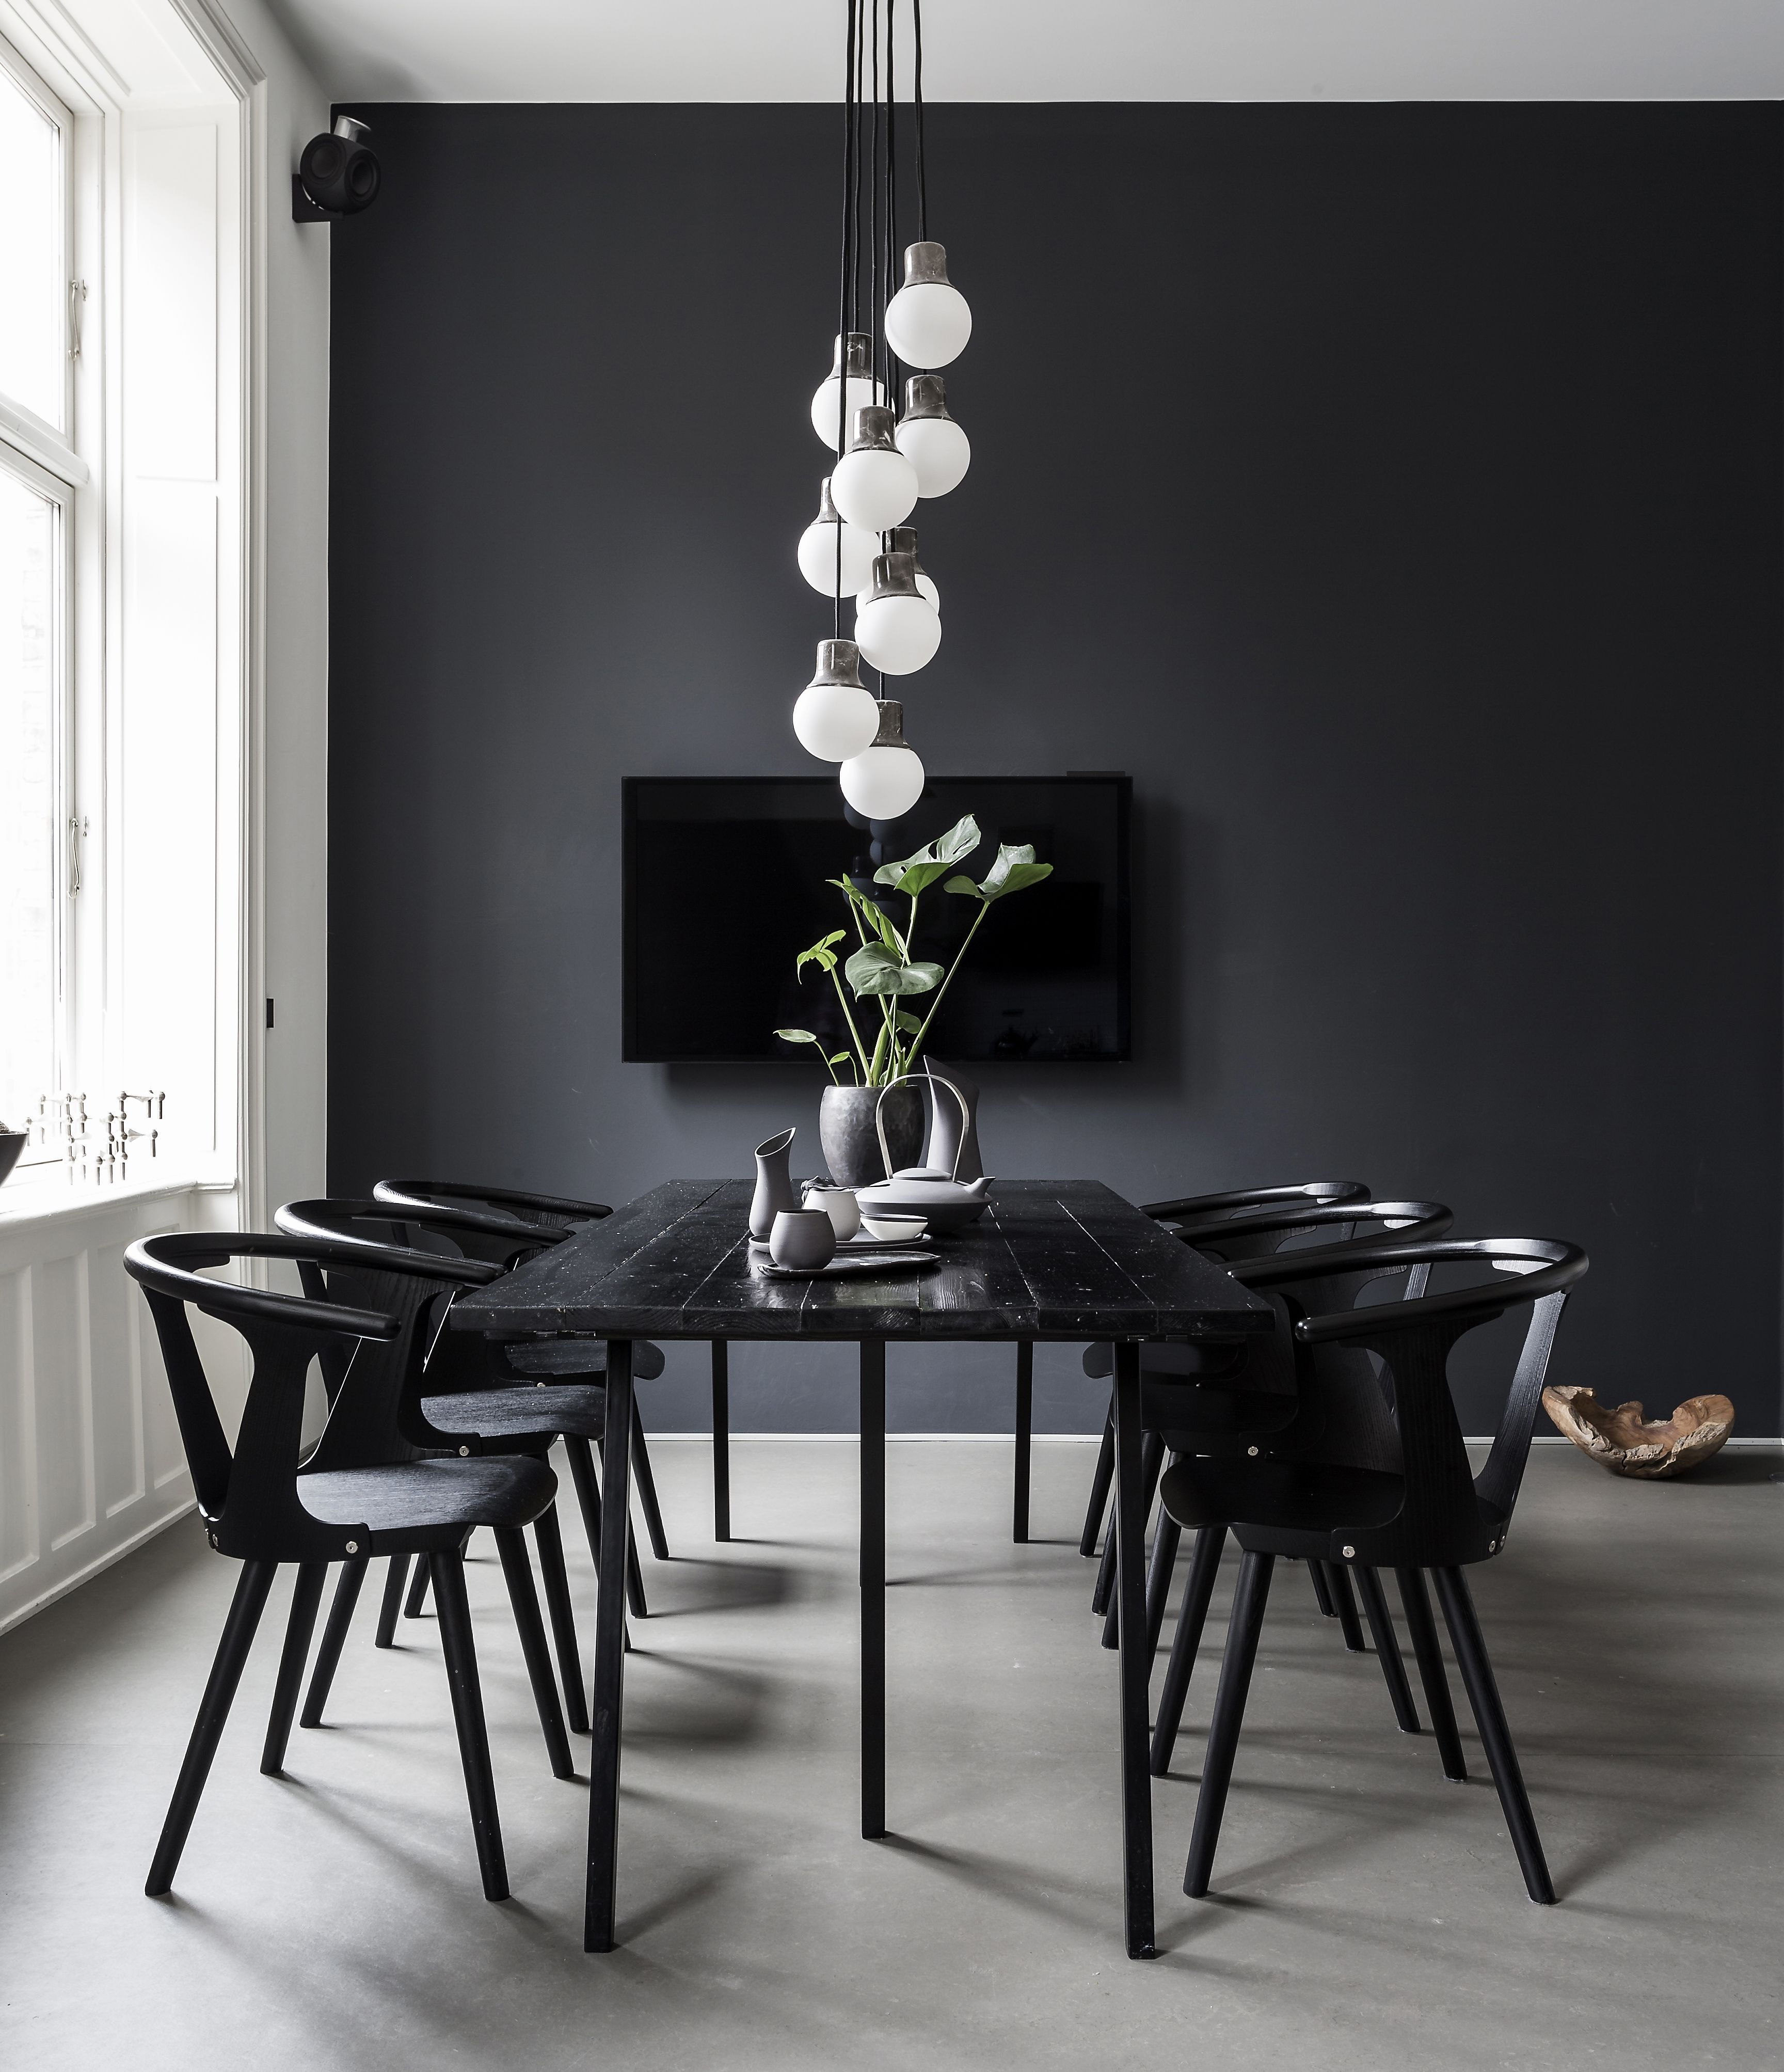 Decorate Your Dinning With These Lovely Christmas Chair: What's Hot On Pinterest: 5 Scandinavian Christmas